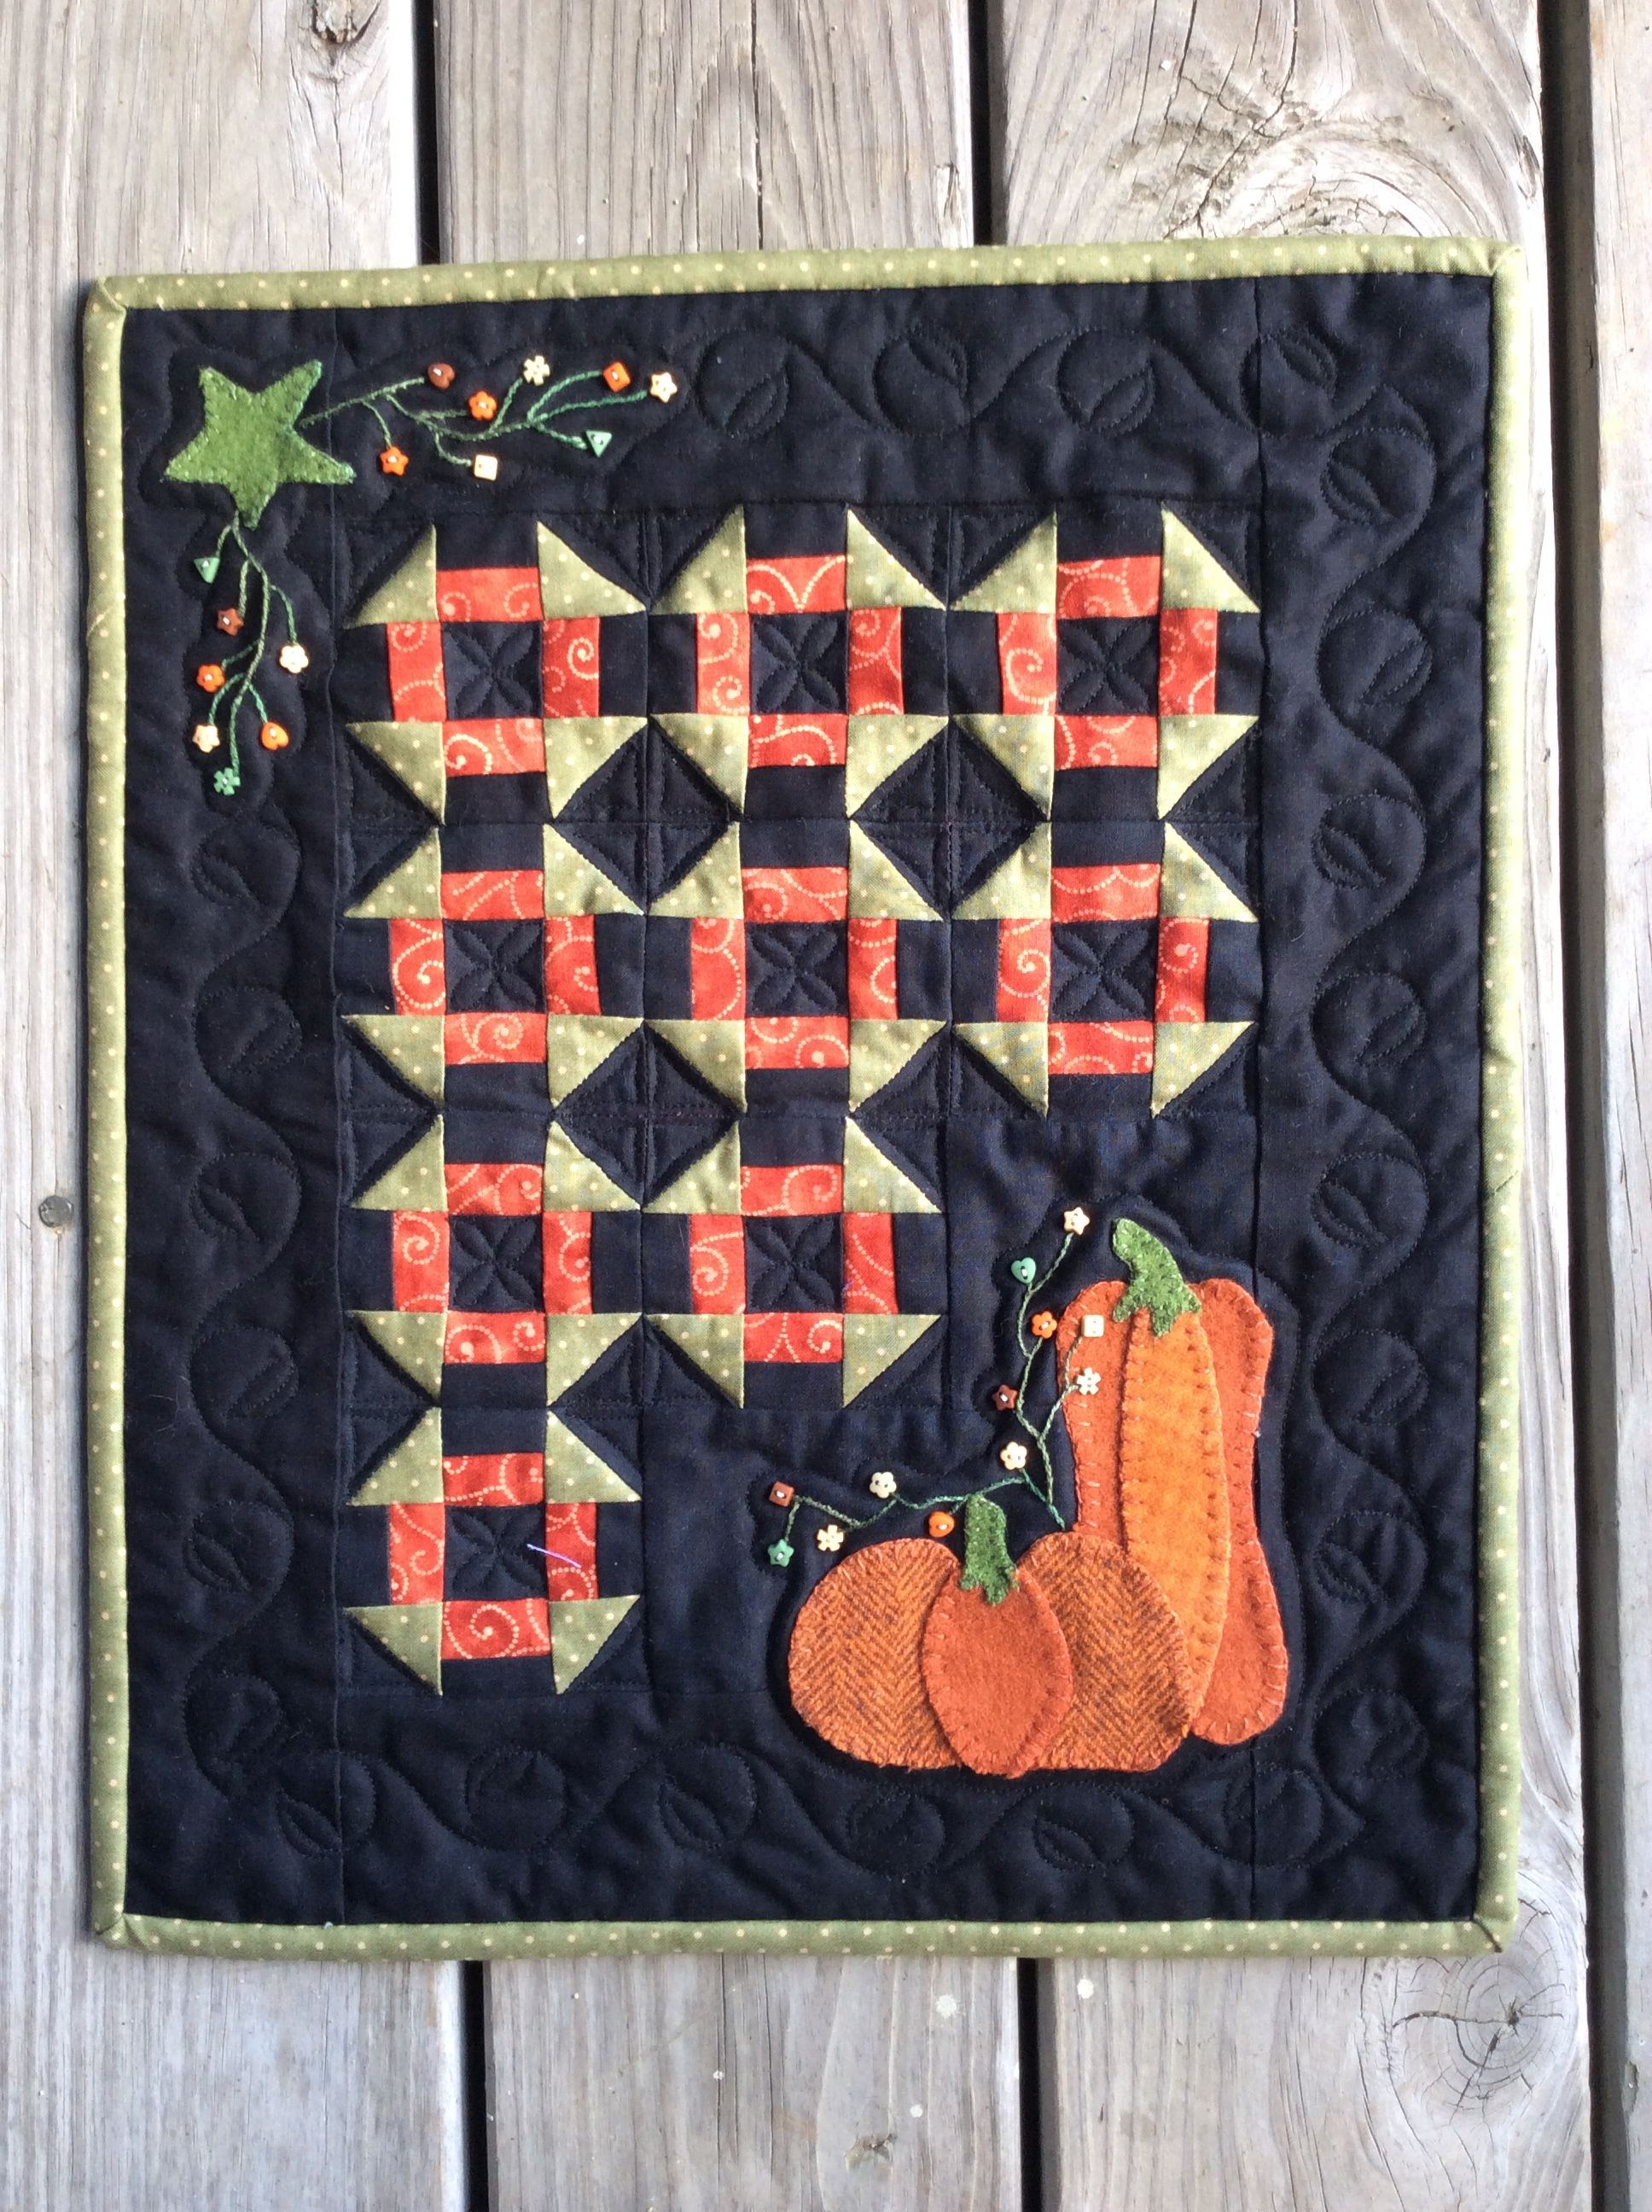 This is in my seasons in wool series this miniature quilt is